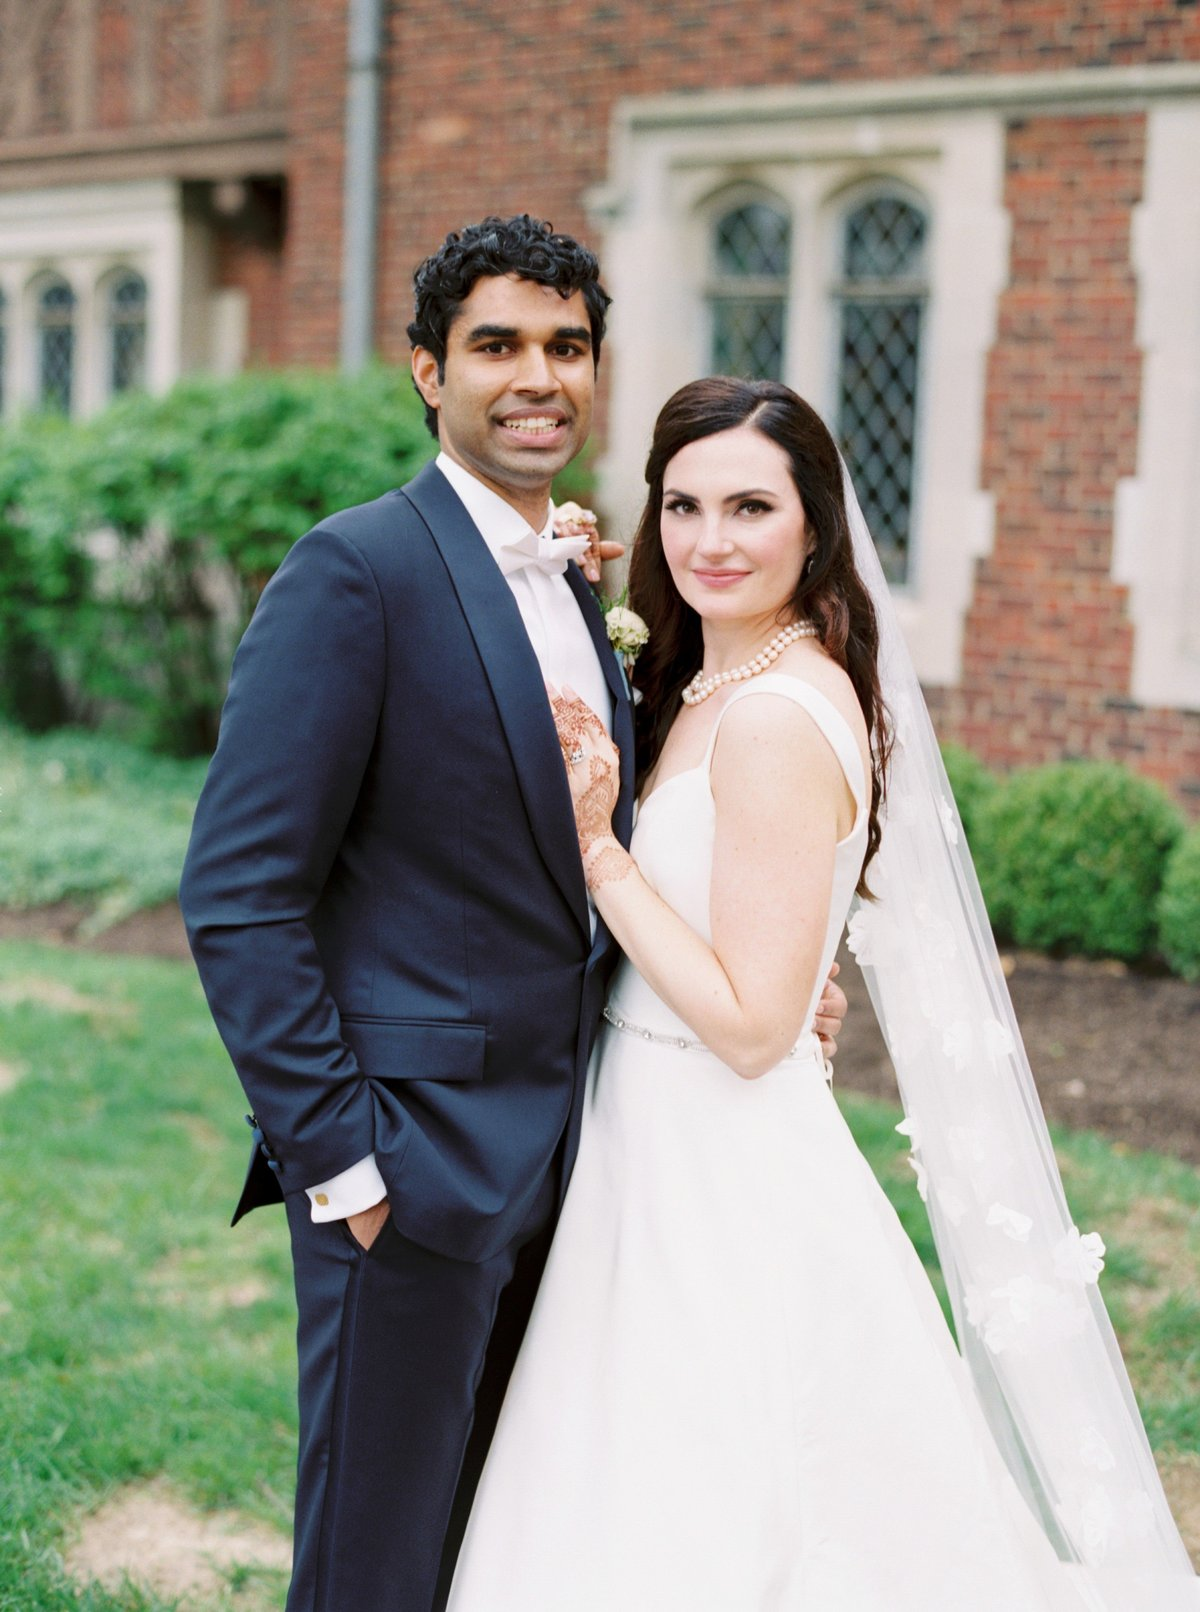 nicoleclareyphotography_hannah+akash_cincinnati_wedding_0018